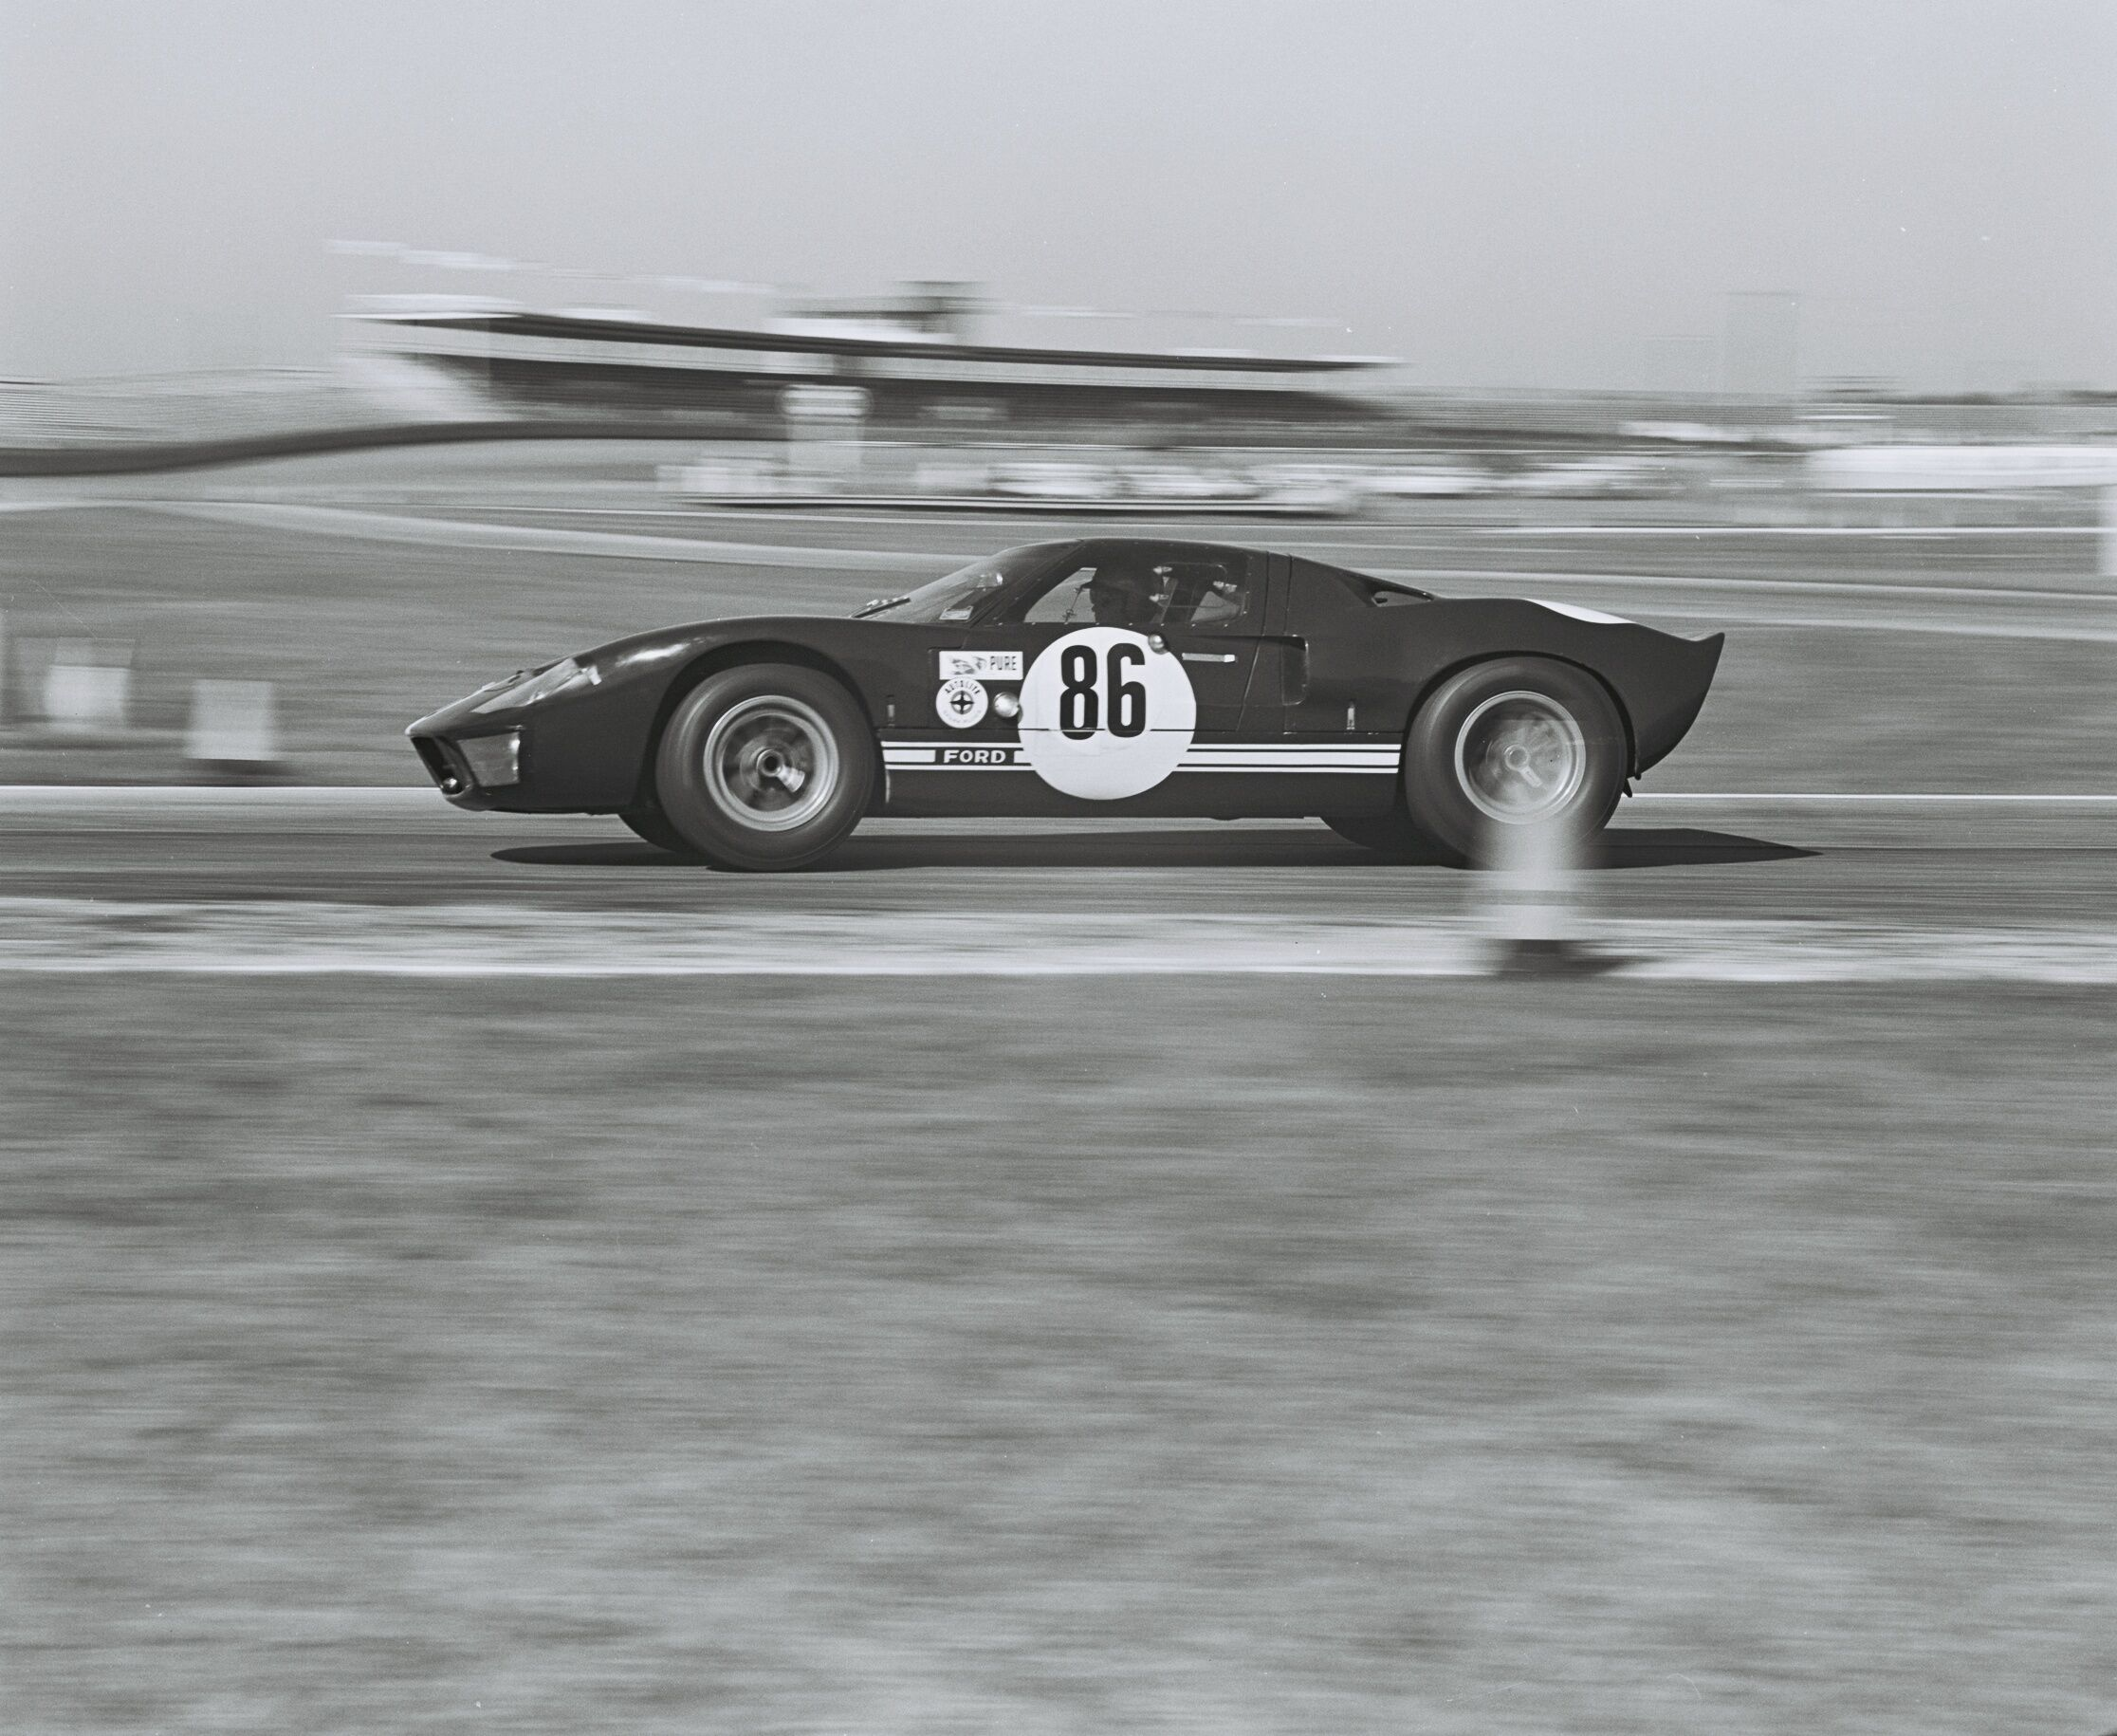 1964 Ford GT40 Prototype GT/105 vintage racing Daytona 1966